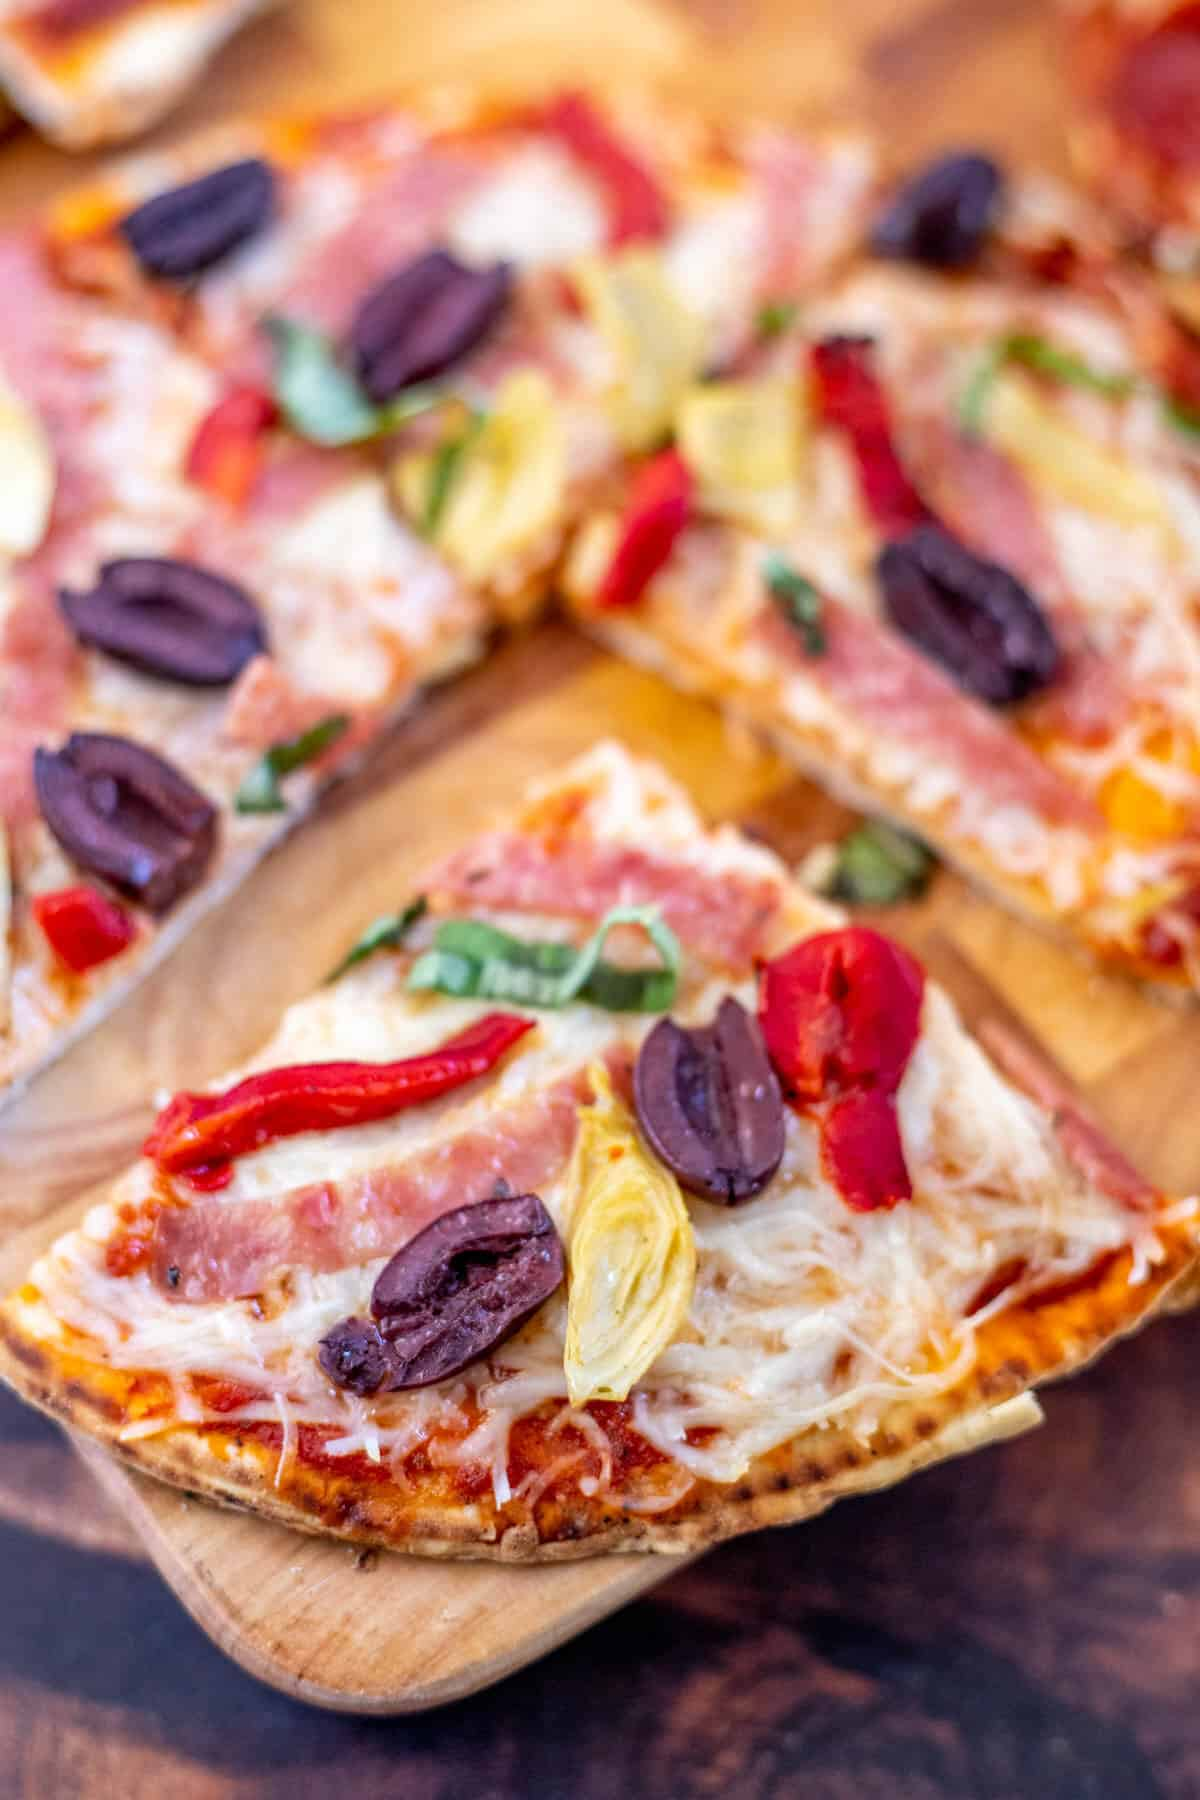 slices of flatbread pizza on a wooden board